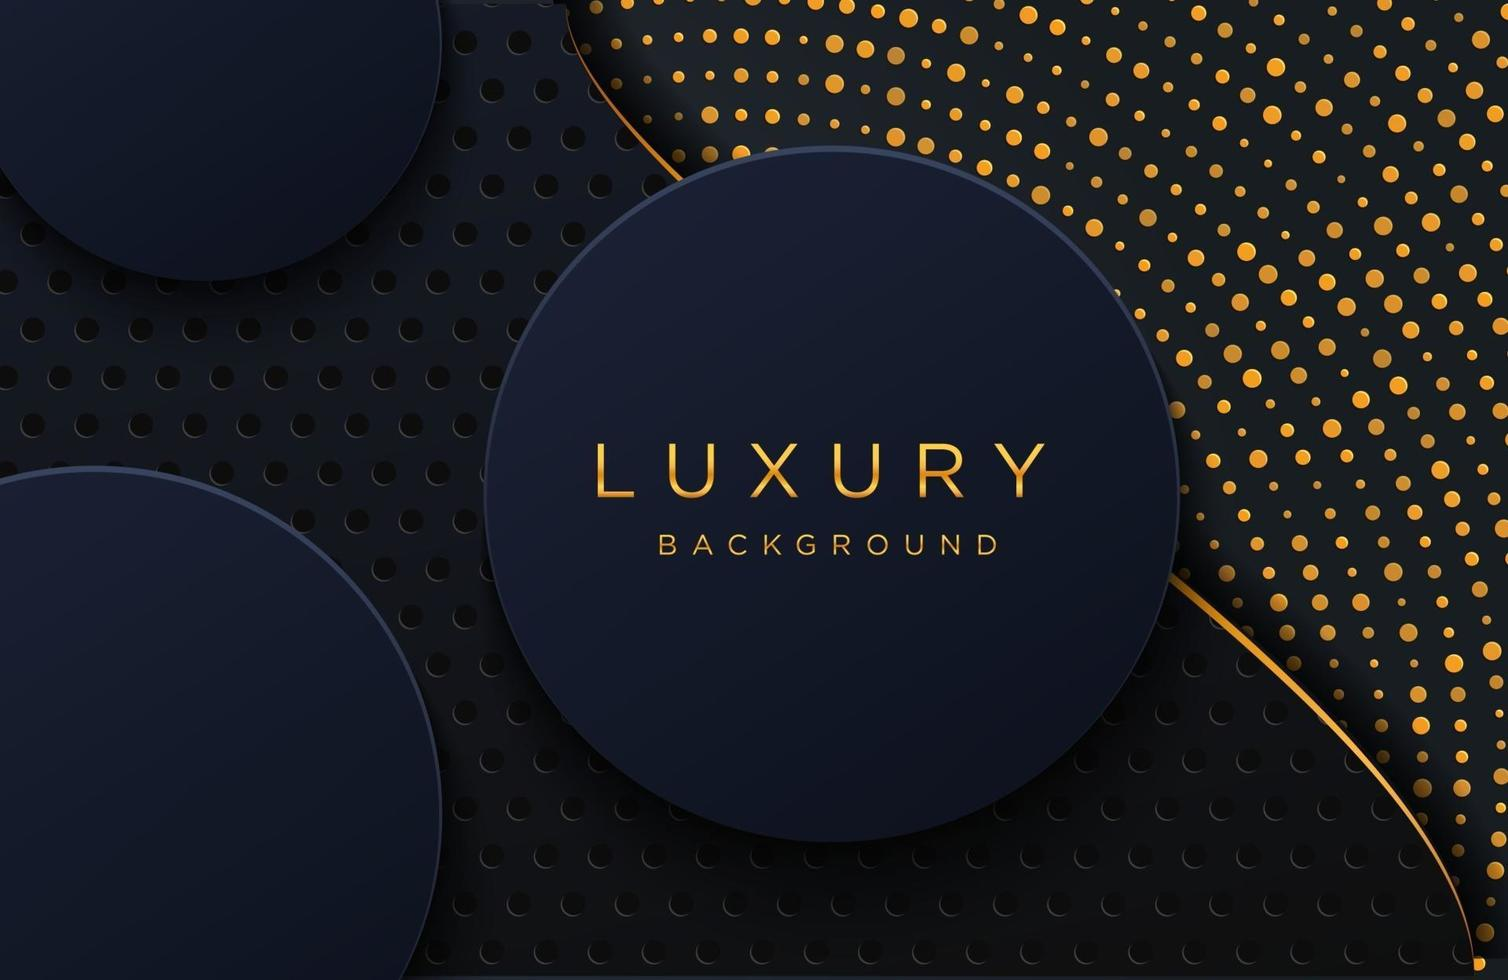 Luxury elegant background with shiny gold dotted pattern isolated on black. Abstract realistic papercut background. Elegant Cover template vector